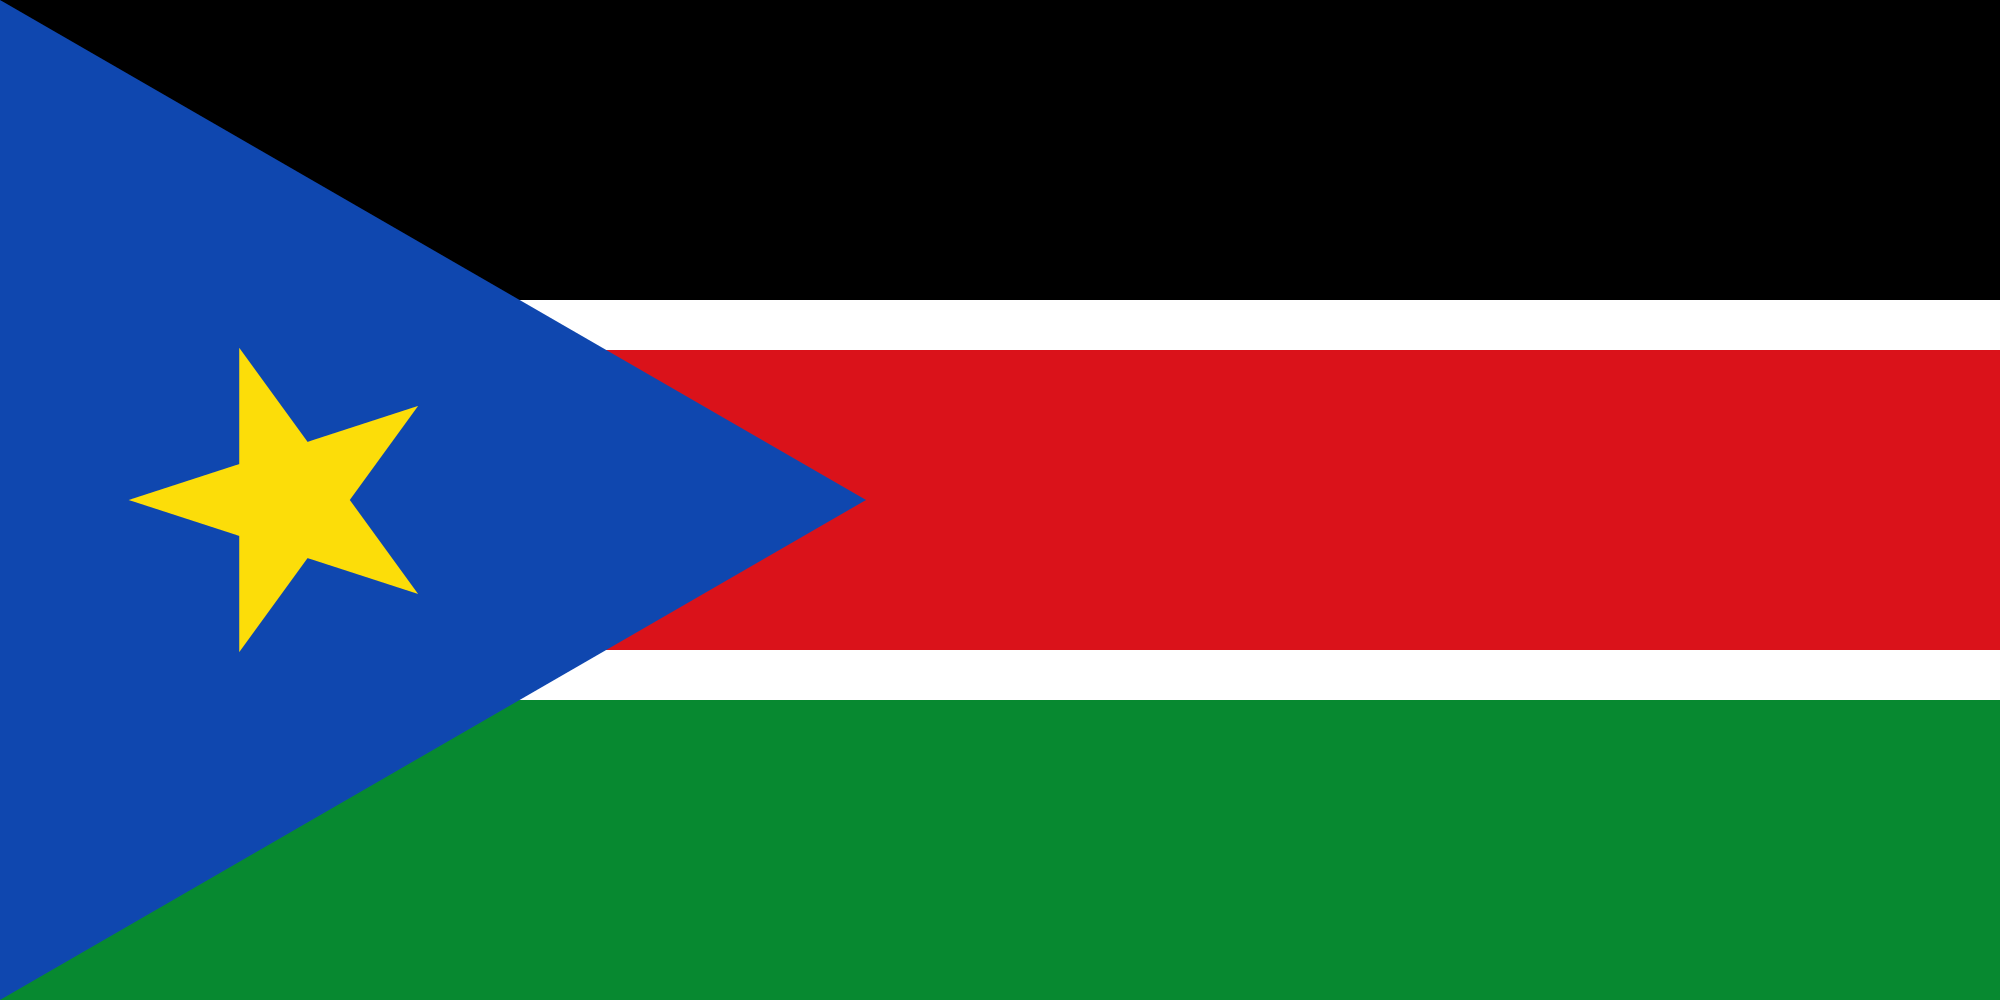 New Flag of South Sudan